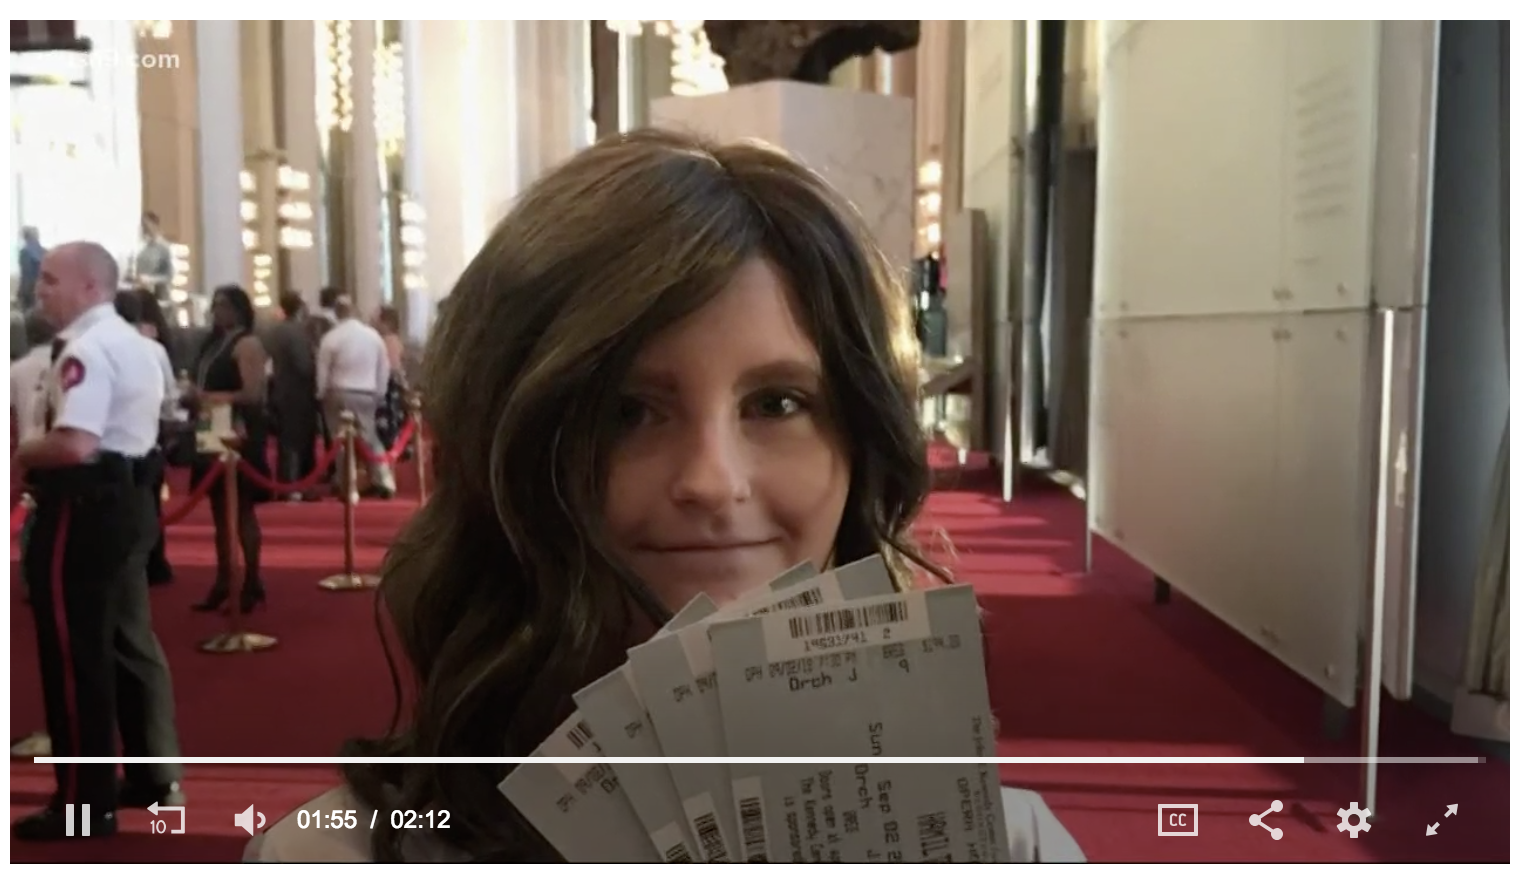 Meghan with Hamilton tickets